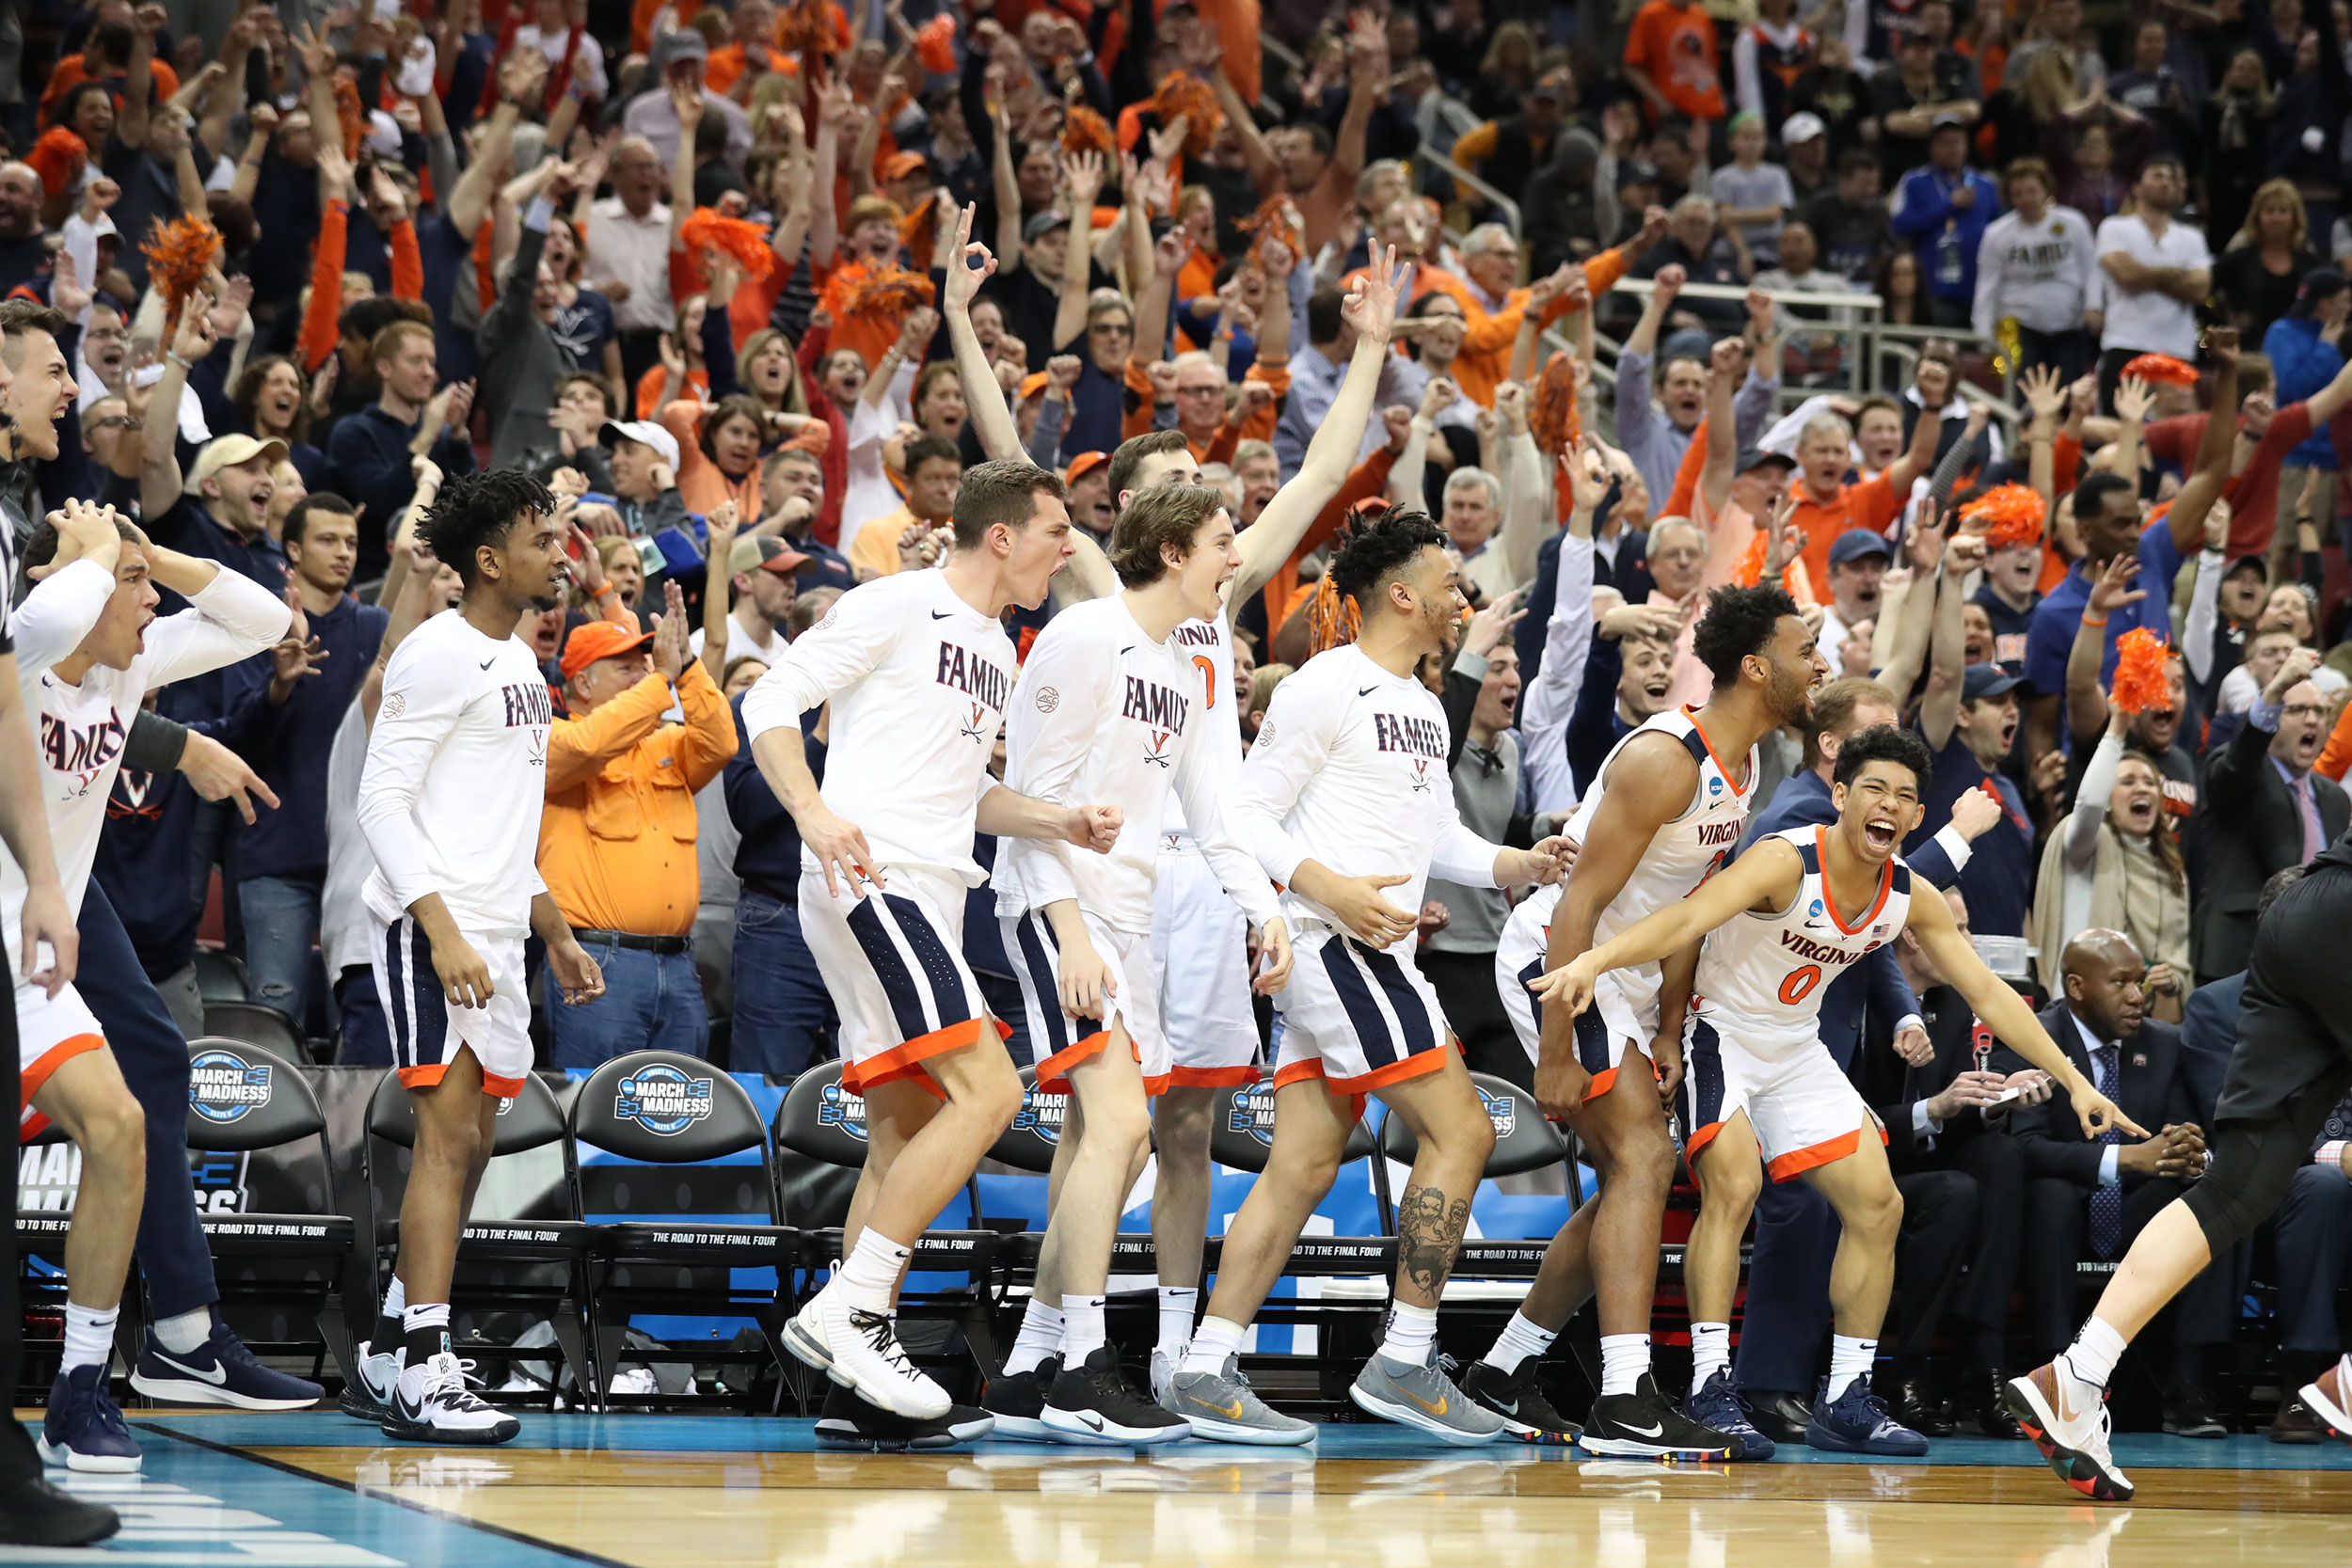 The UVA bench reacts as its game against Purdue University drew to a heart-stopping close.